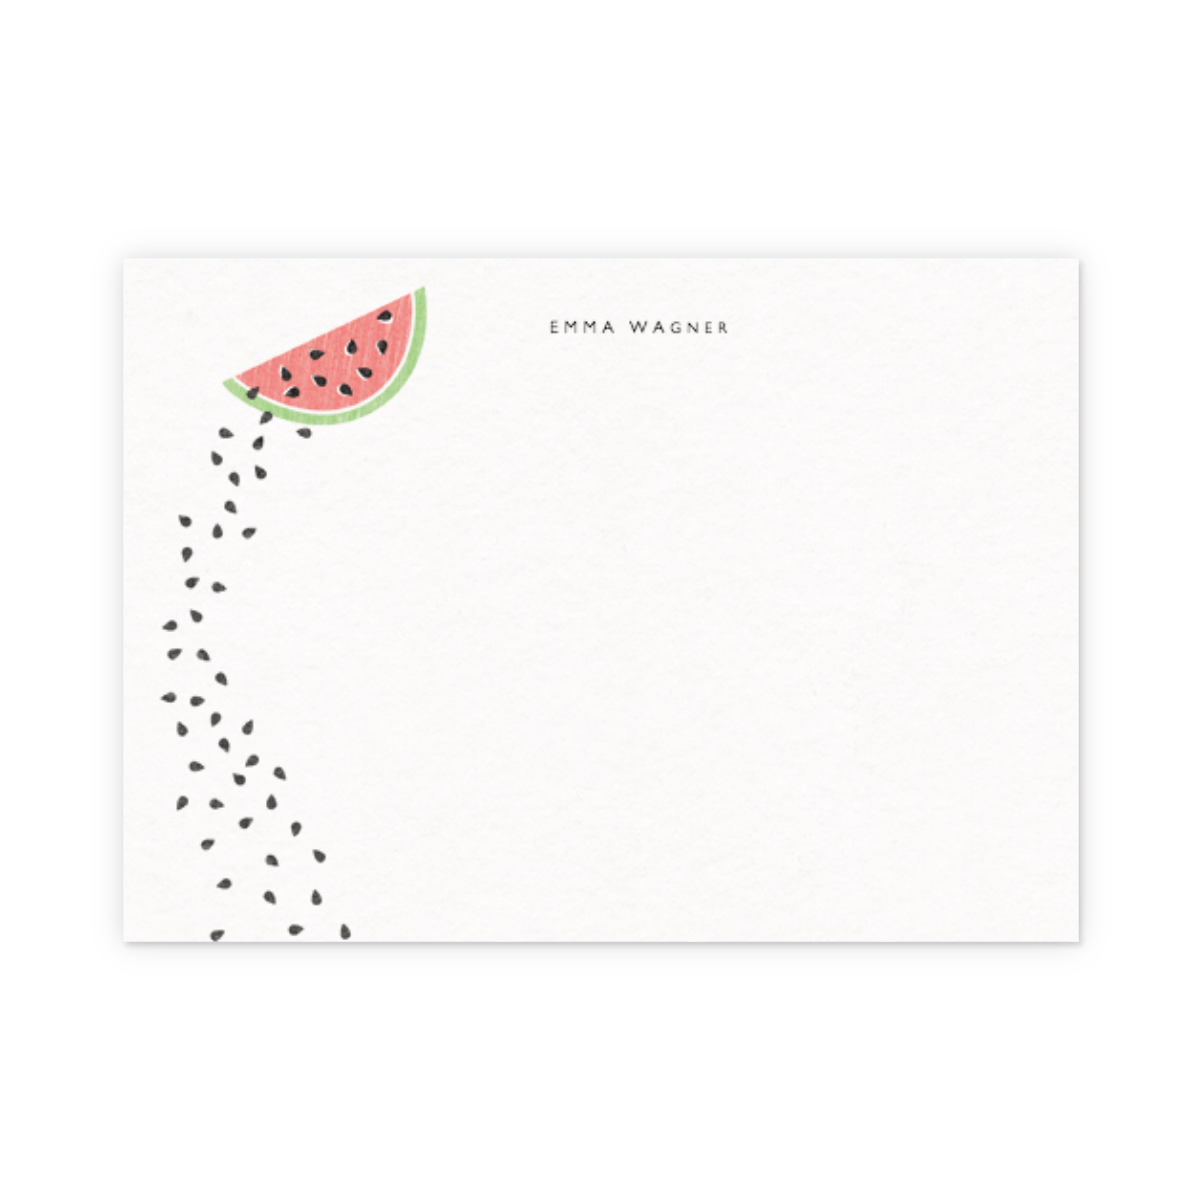 Https%3a%2f%2fwww.papier.com%2fproduct image%2f45004%2f10%2fwatermelon 486 vorderseite 1534885799.png?ixlib=rb 1.1